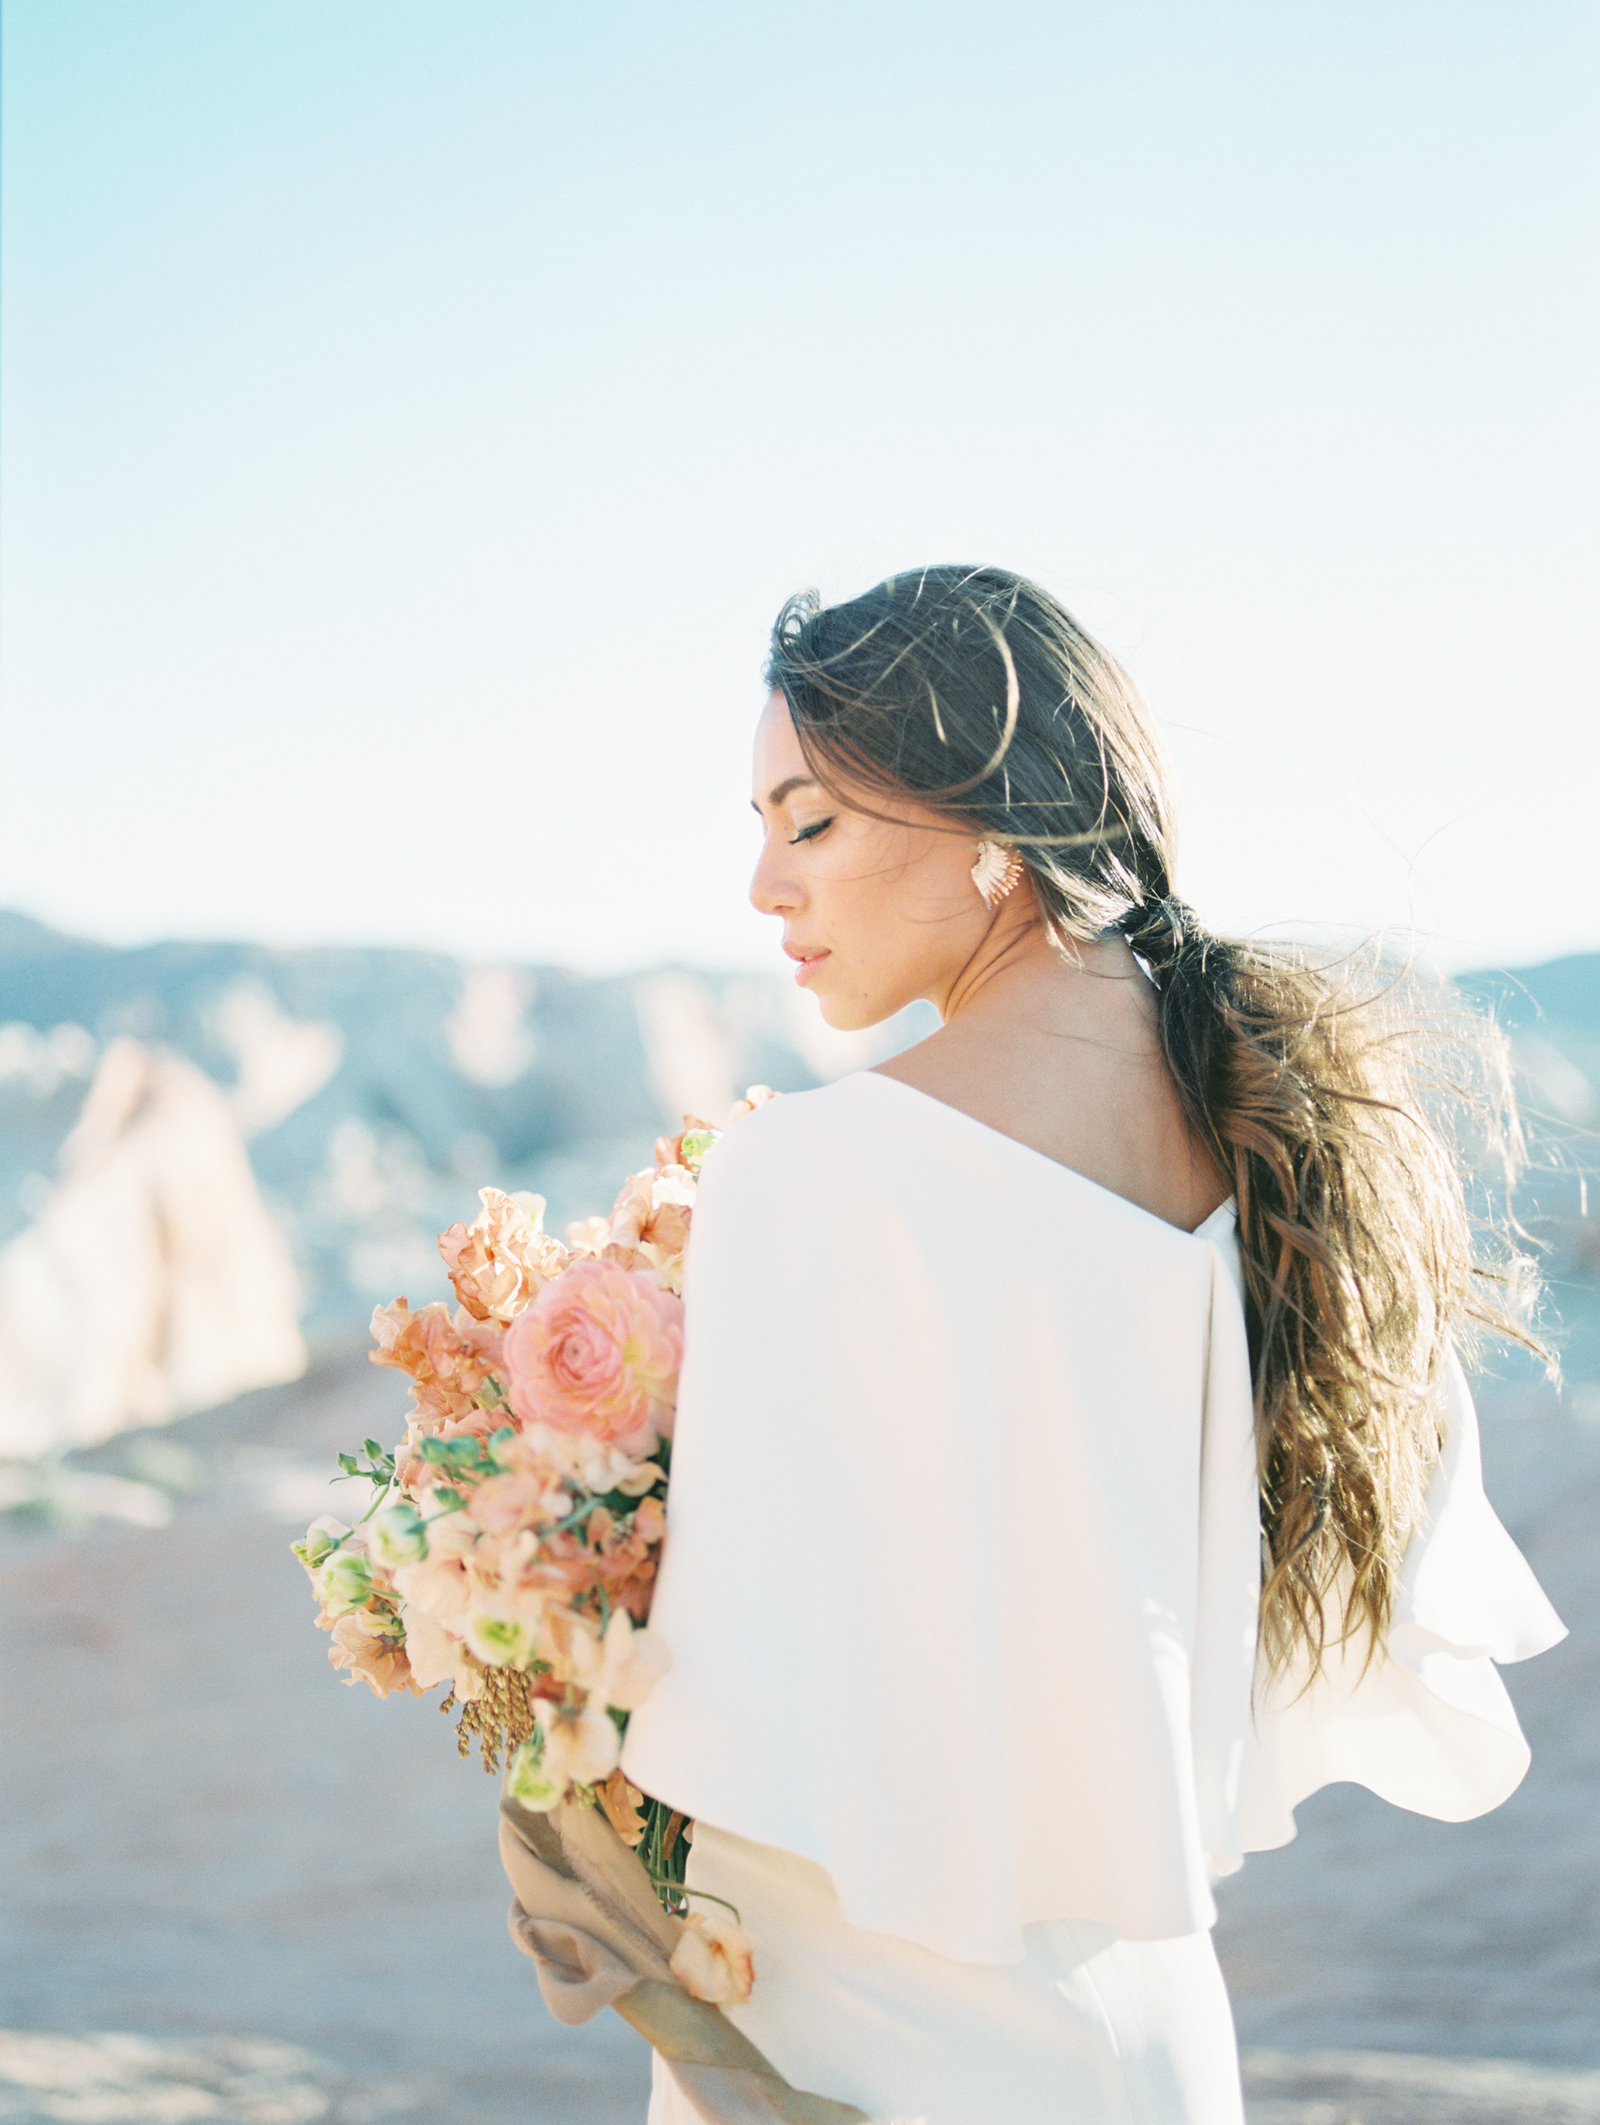 AKP_Desert_Wedding_Bridal_Shoot_Film_Fine_Art_Wedding_Photographer_Los_Angeles-4.jpg